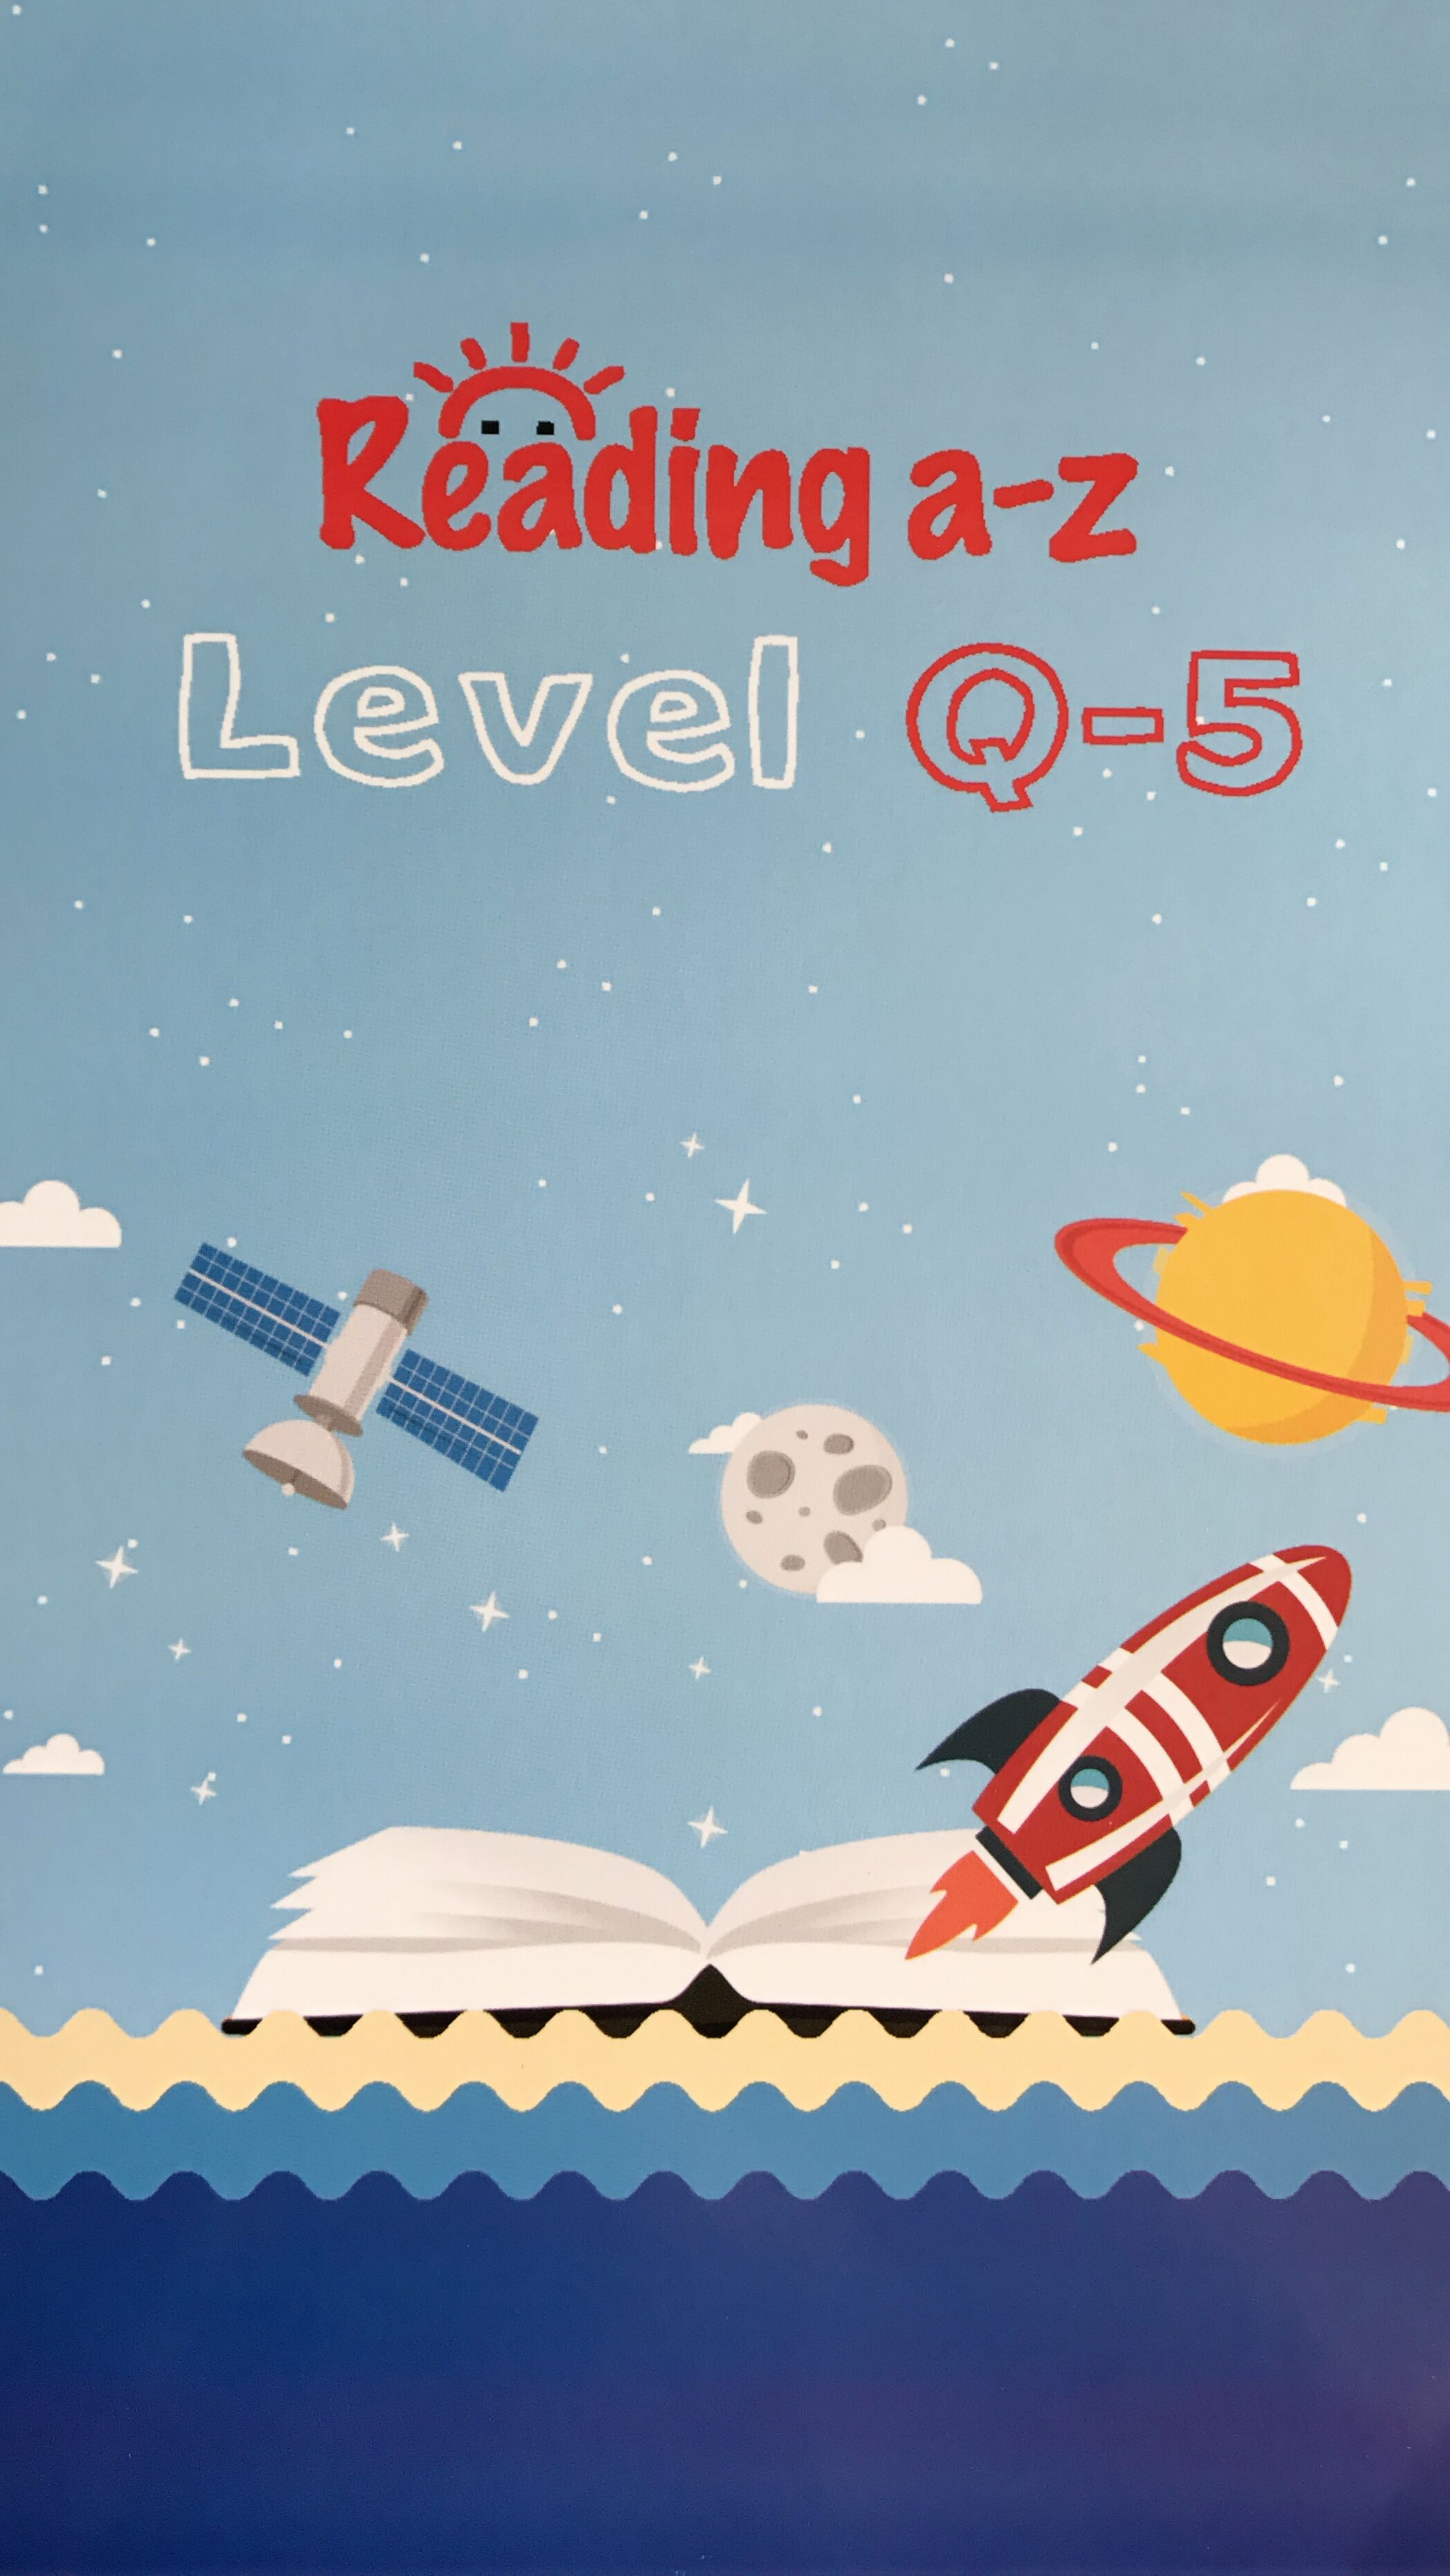 Reading A-Z Level Q-5